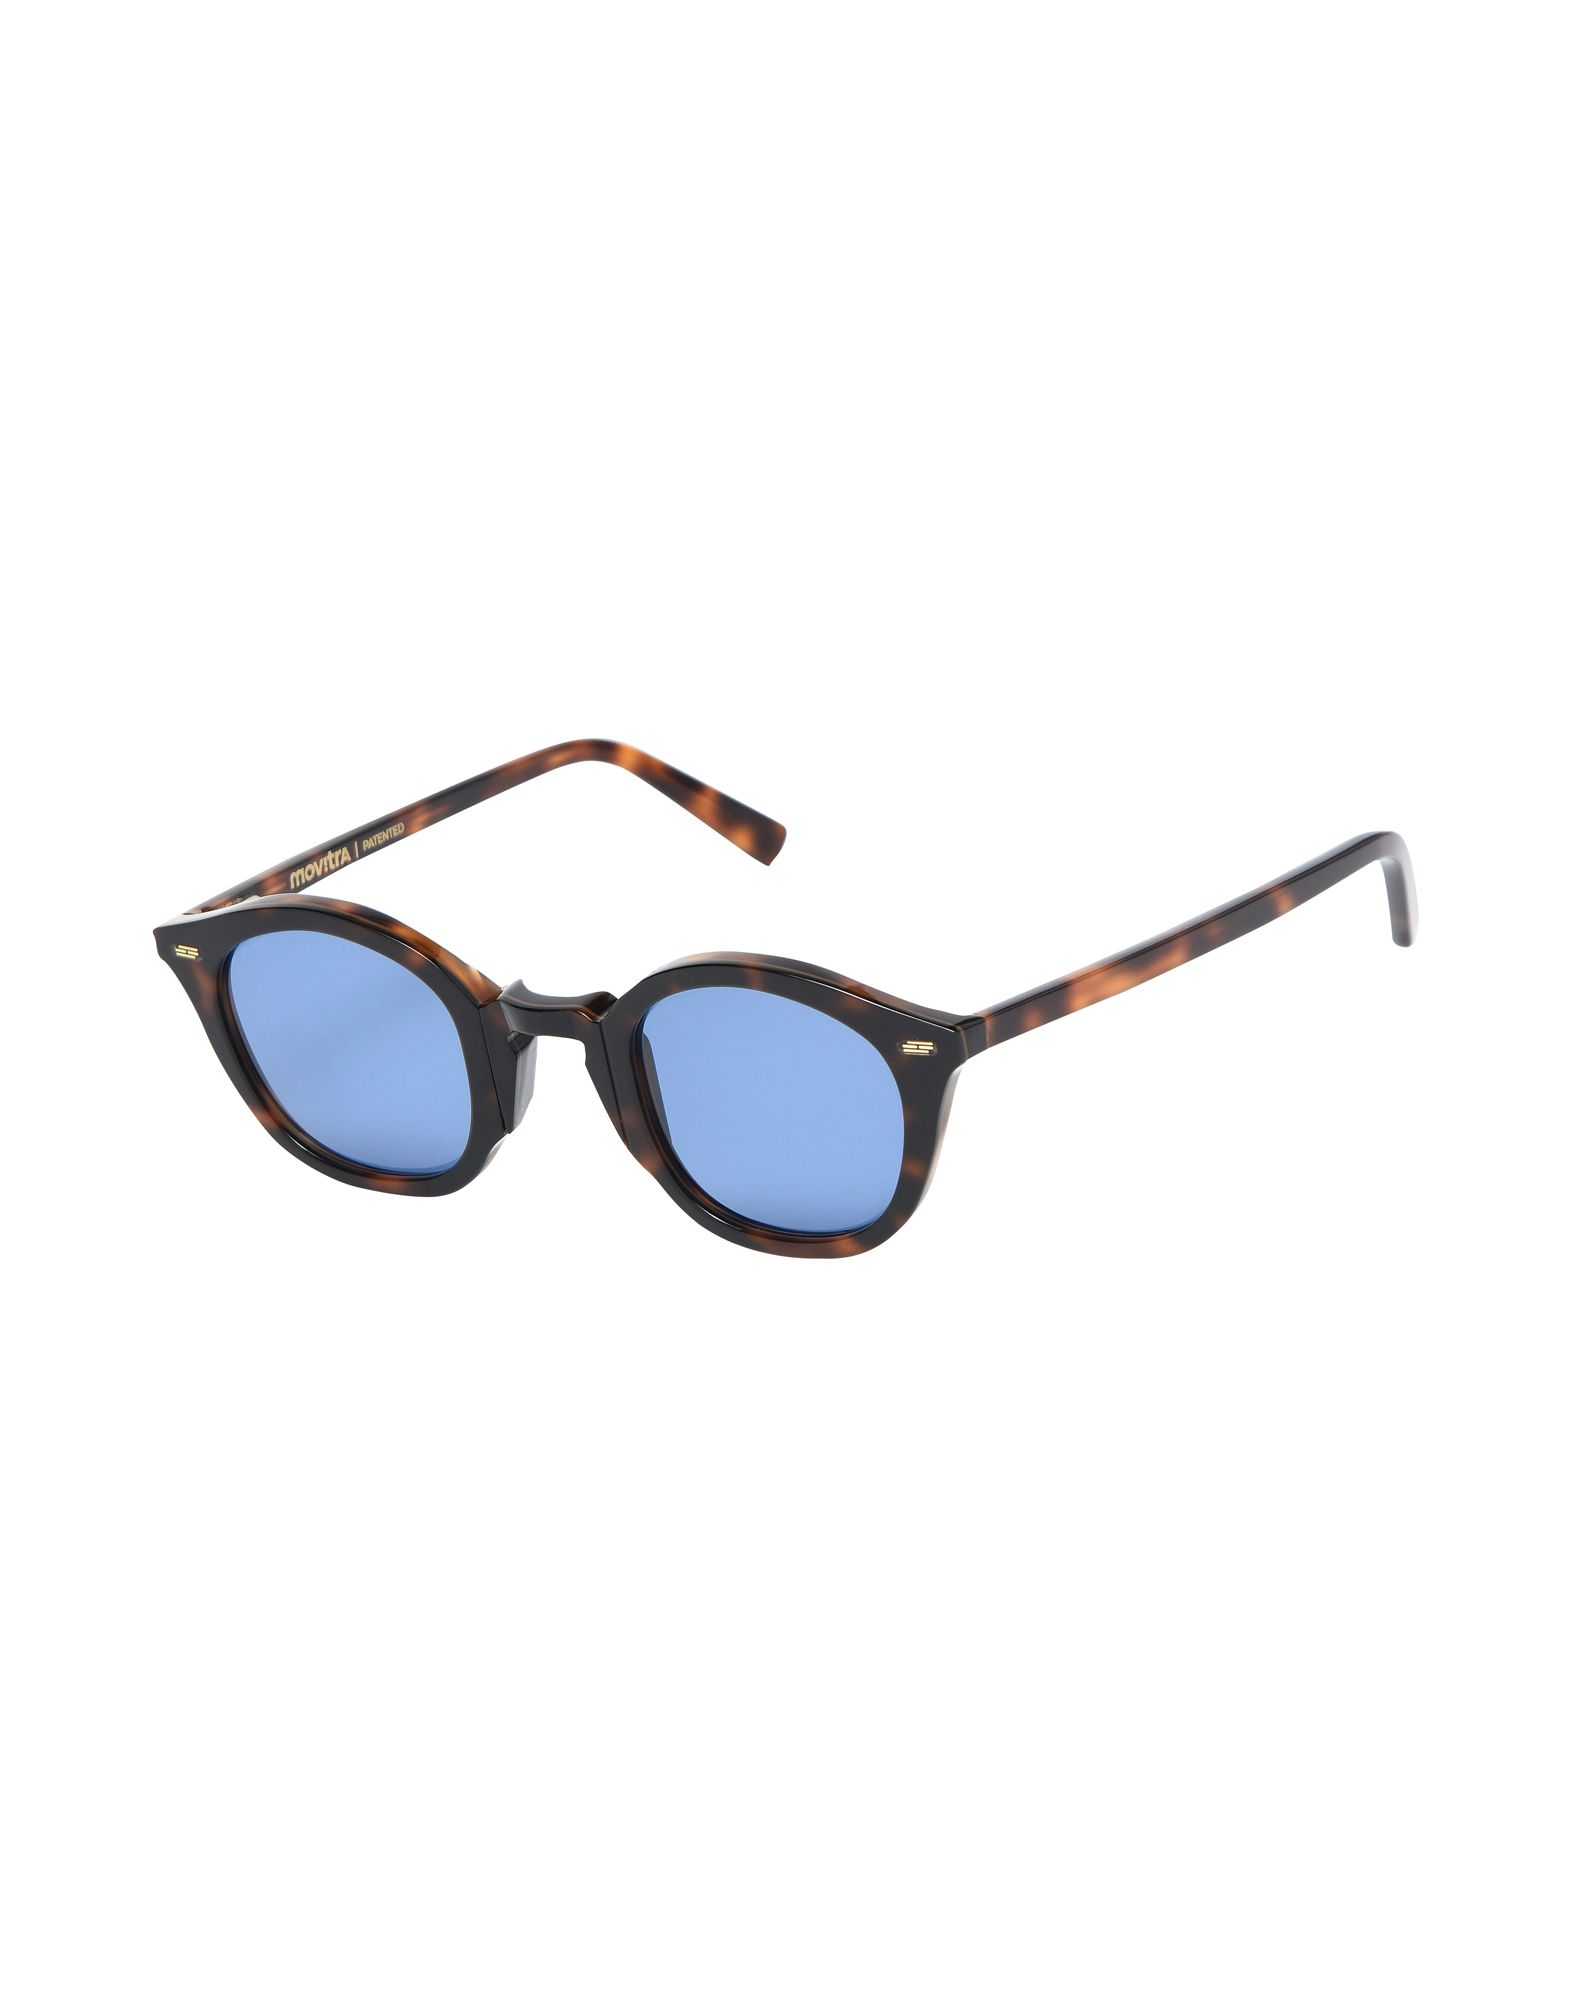 MOVITRA Sunglasses in Dark Brown